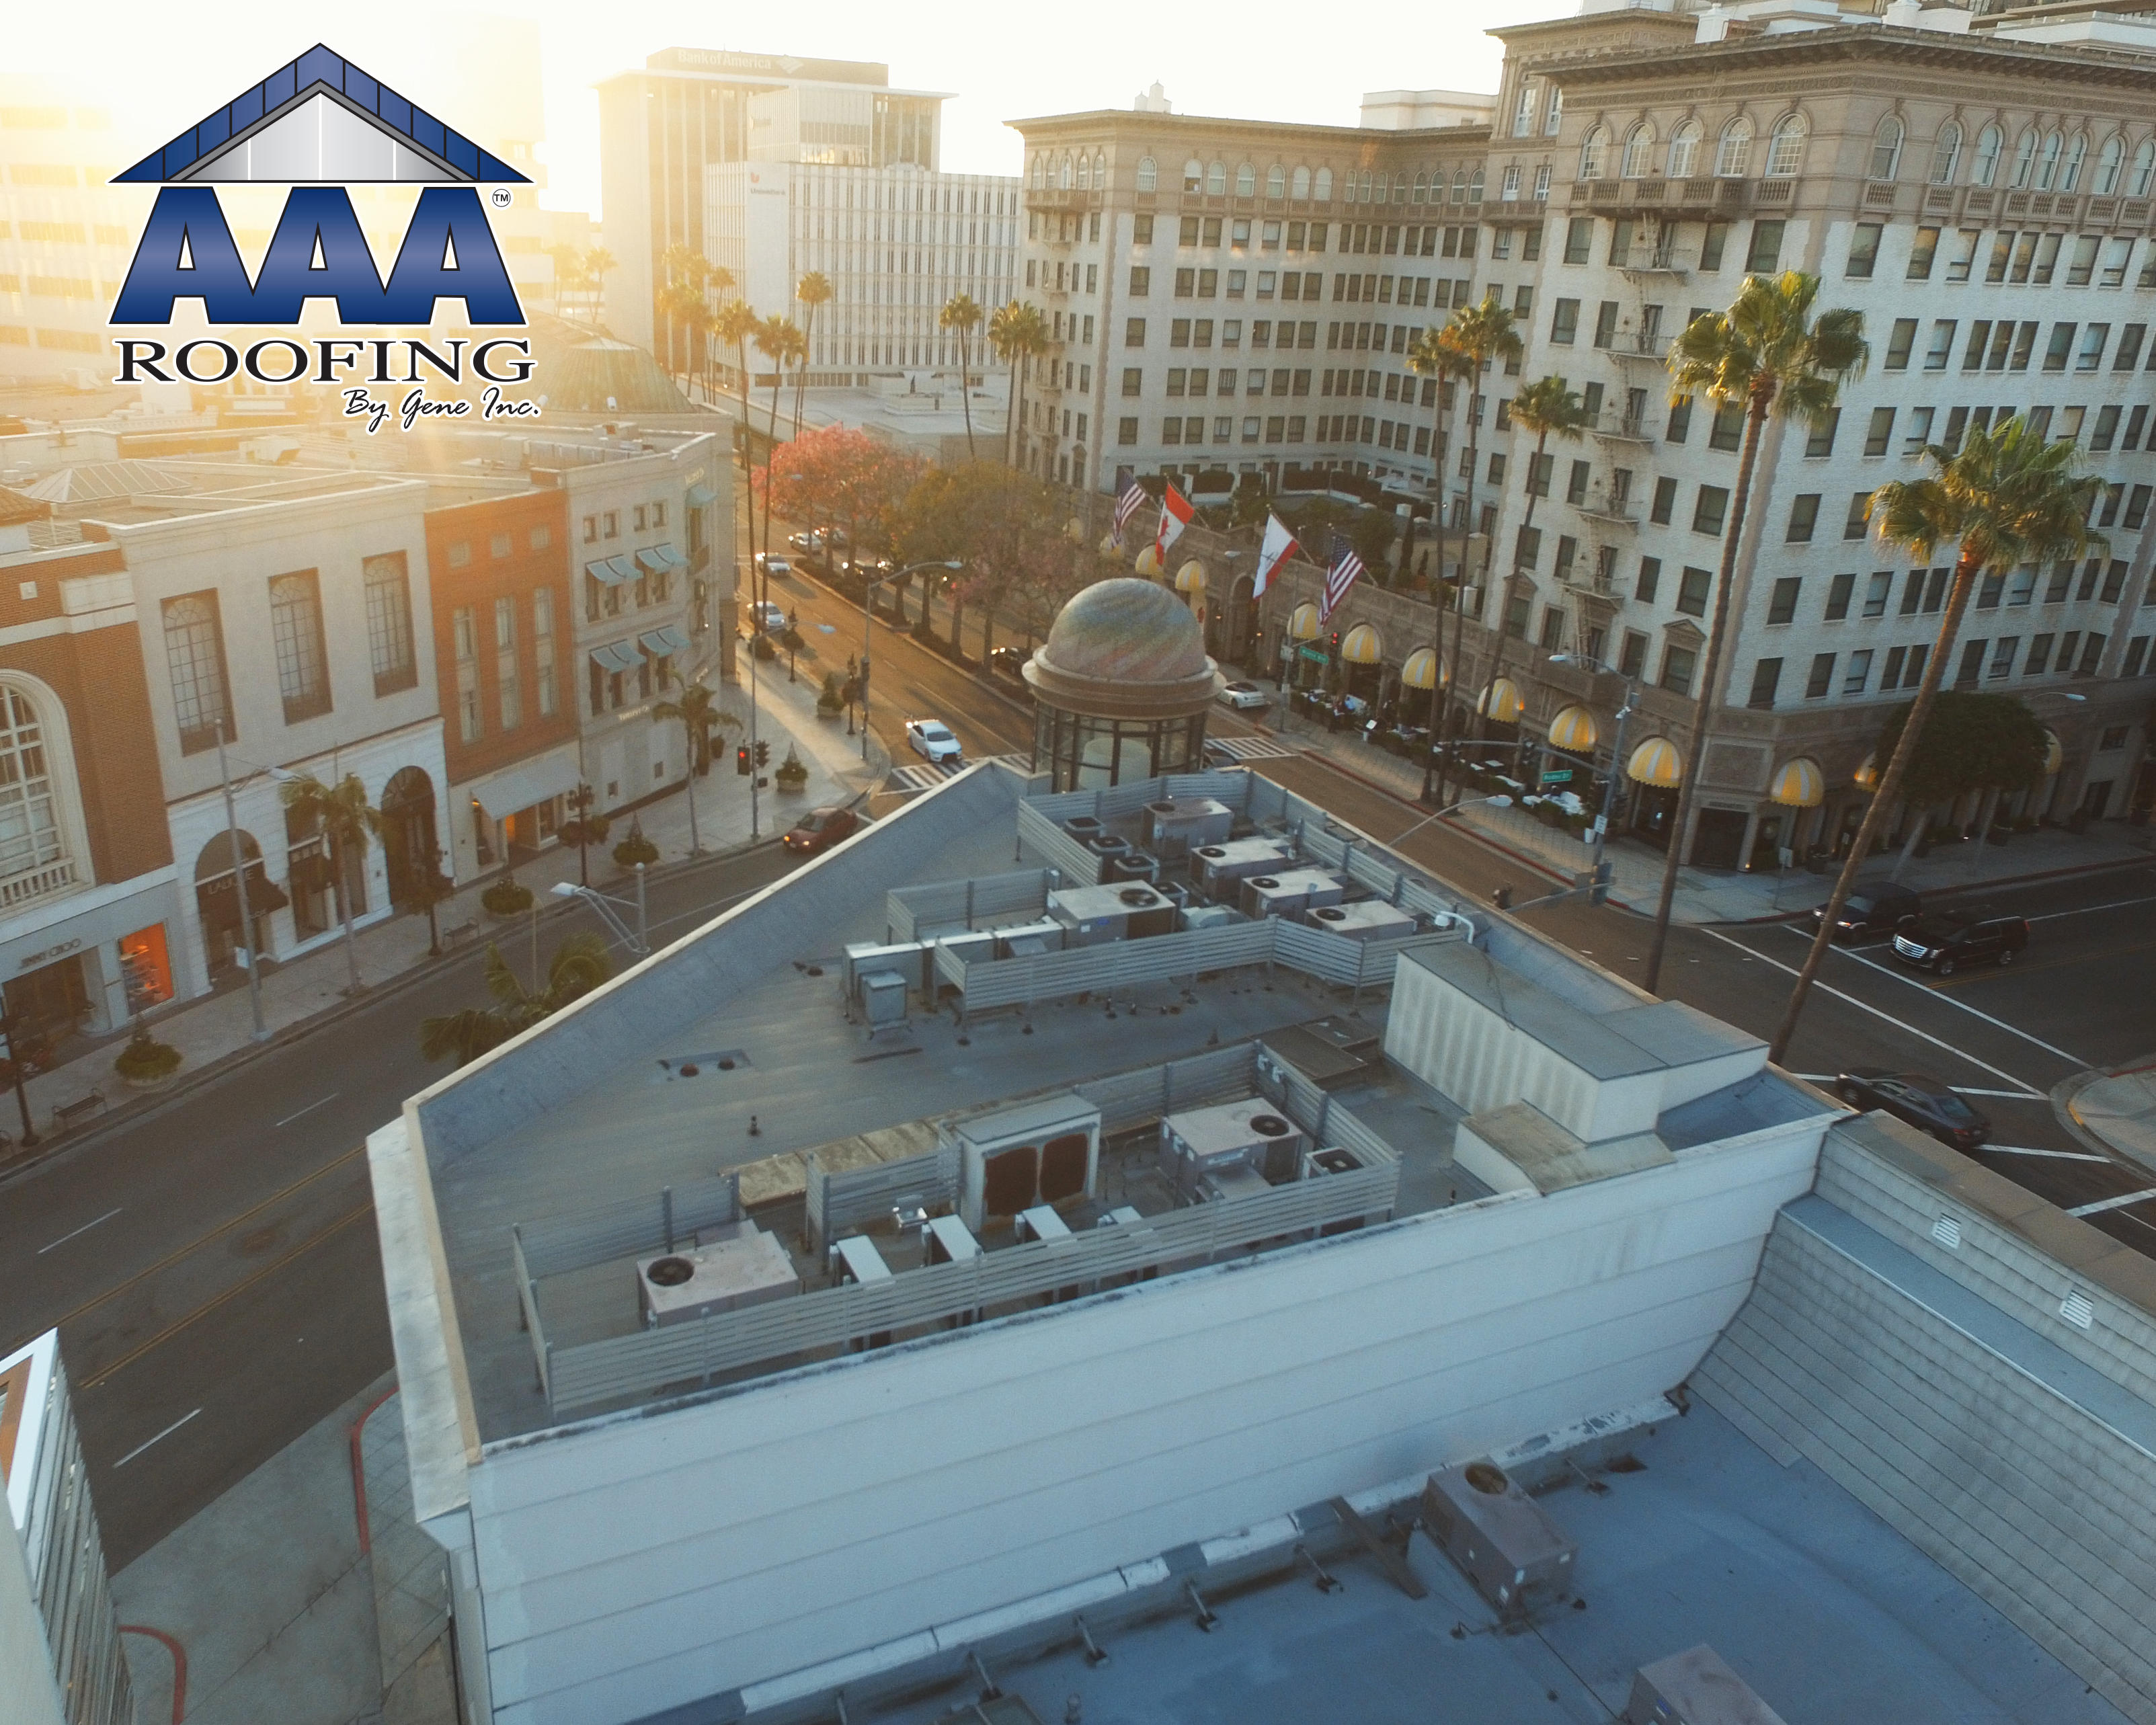 AAA Roofing by Gene image 2